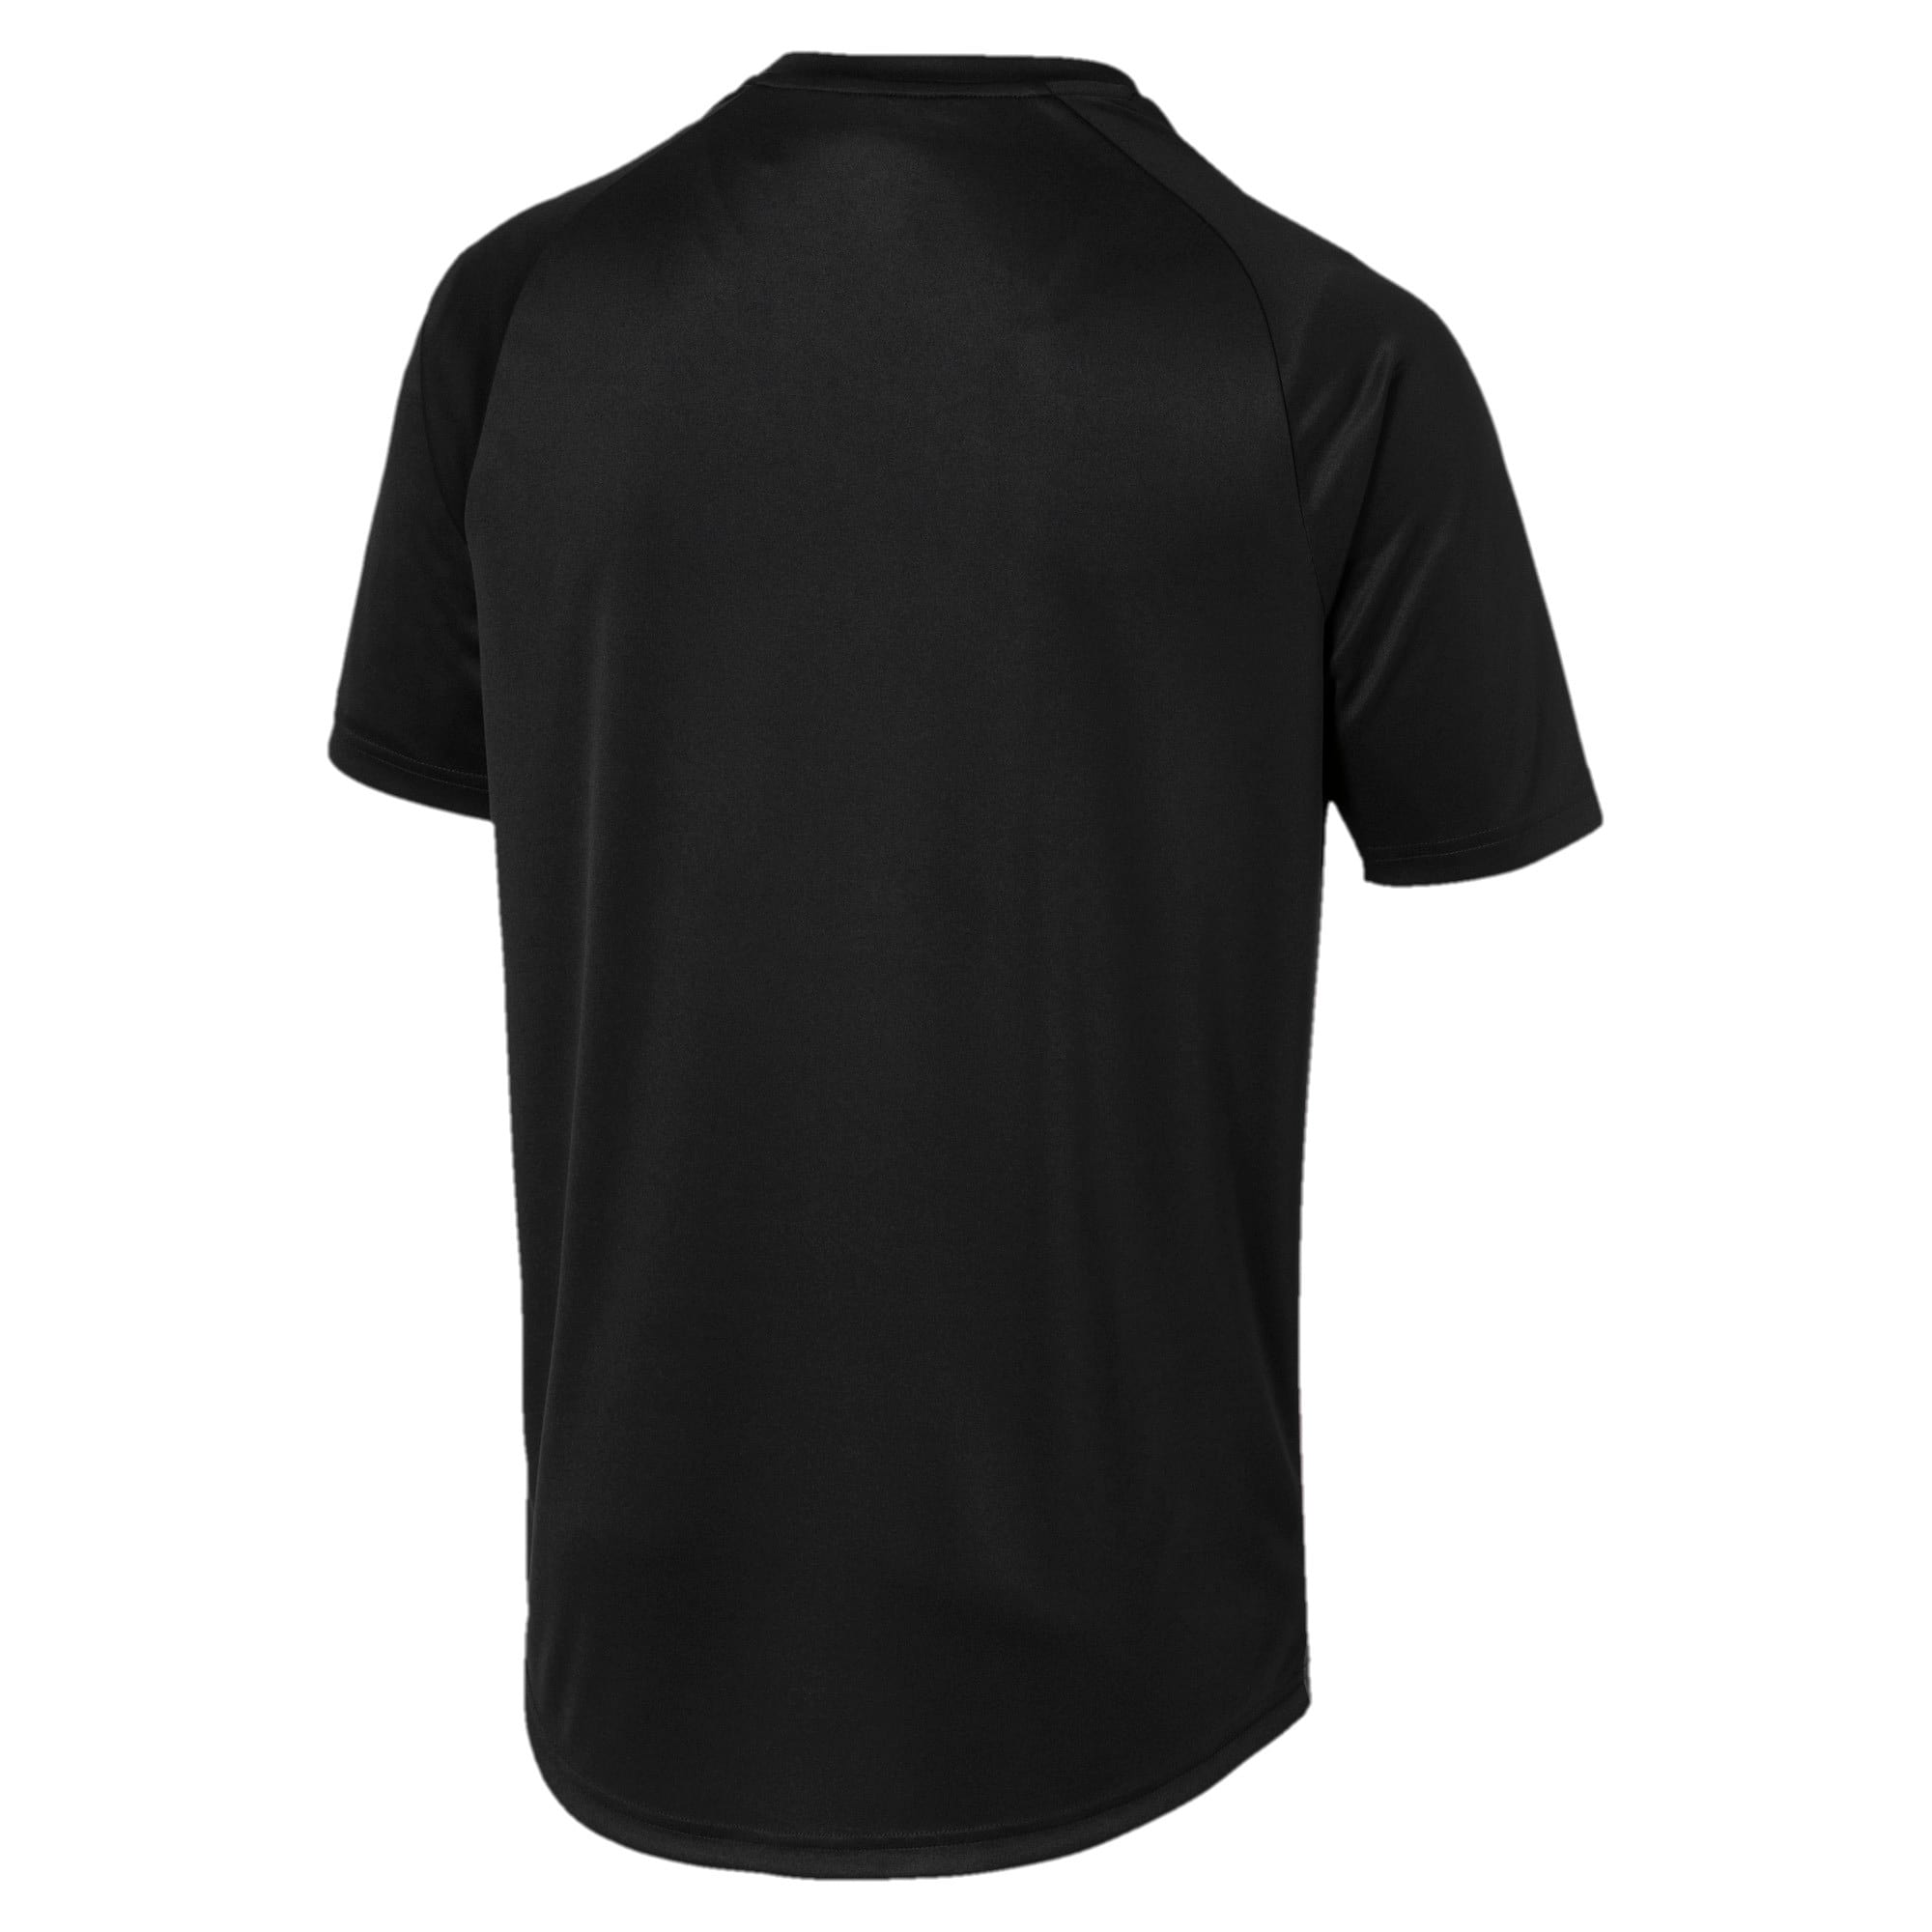 Thumbnail 2 of Man City Men's International Stadium Short Sleeve Jersey, Puma Black-Georgia Peach, medium